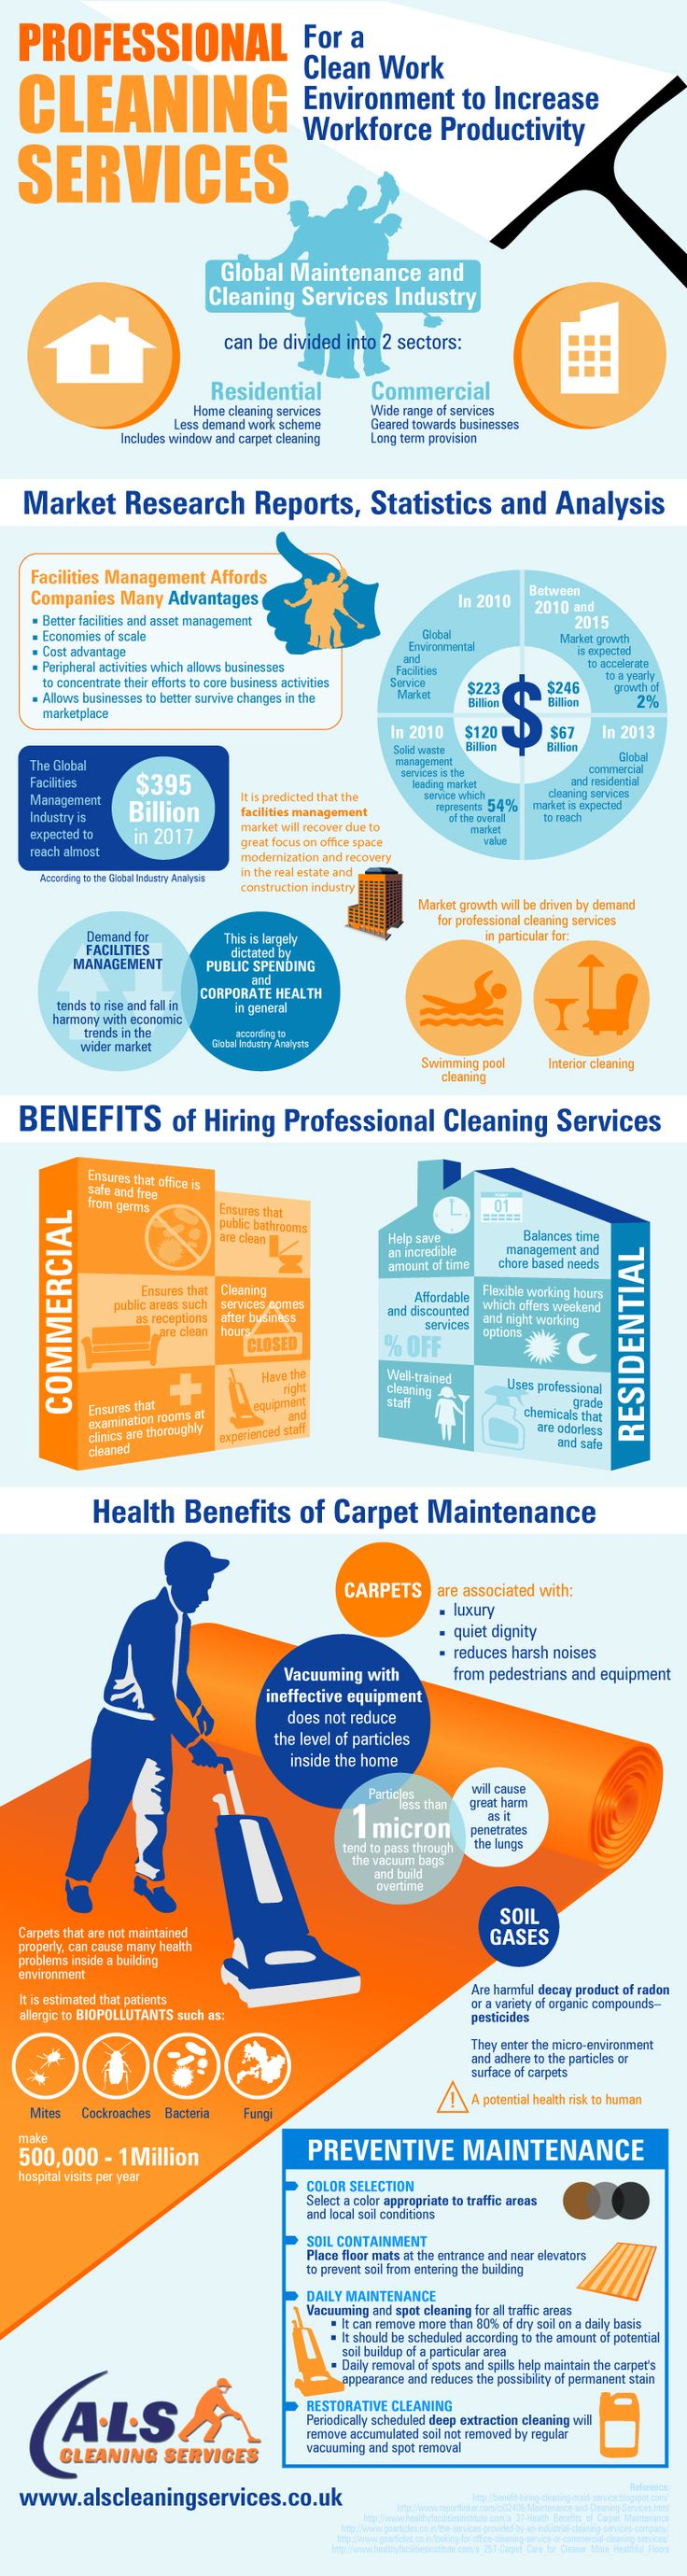 Professional Cleaning Services For a Clean Work Environment to Increase Workforce Productivity